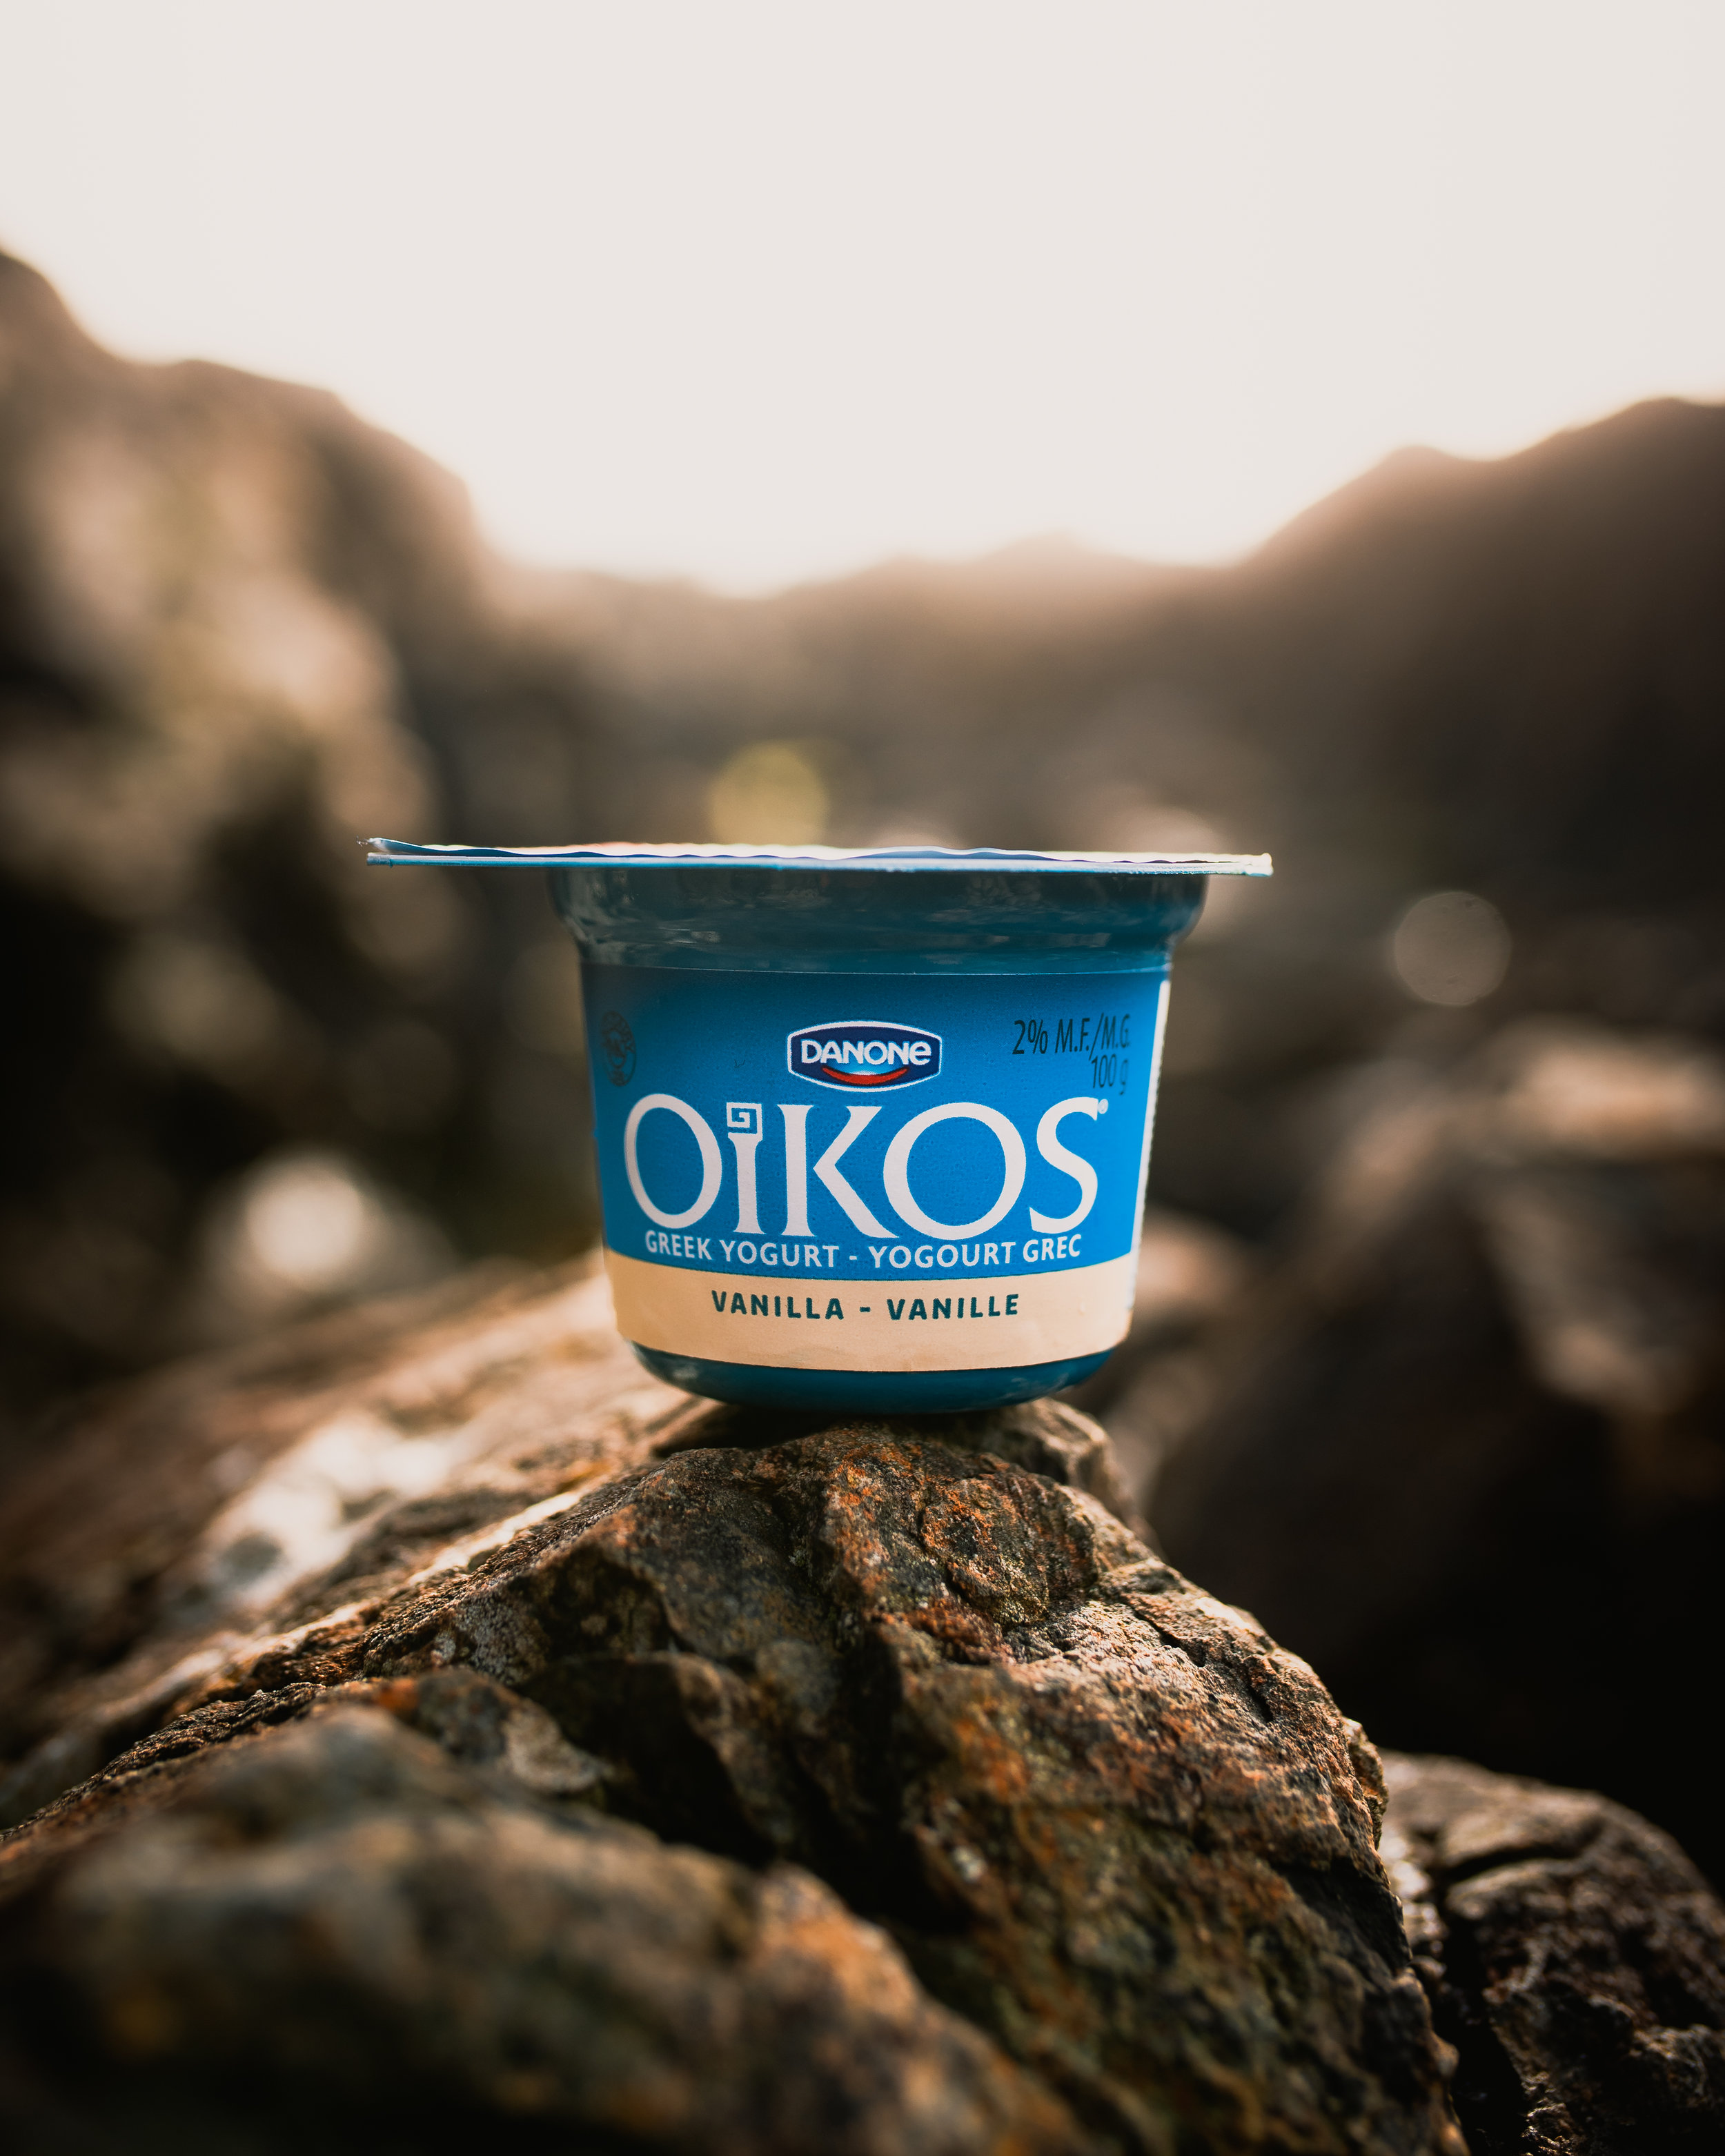 oikos by ianharland (16 of 17).jpg